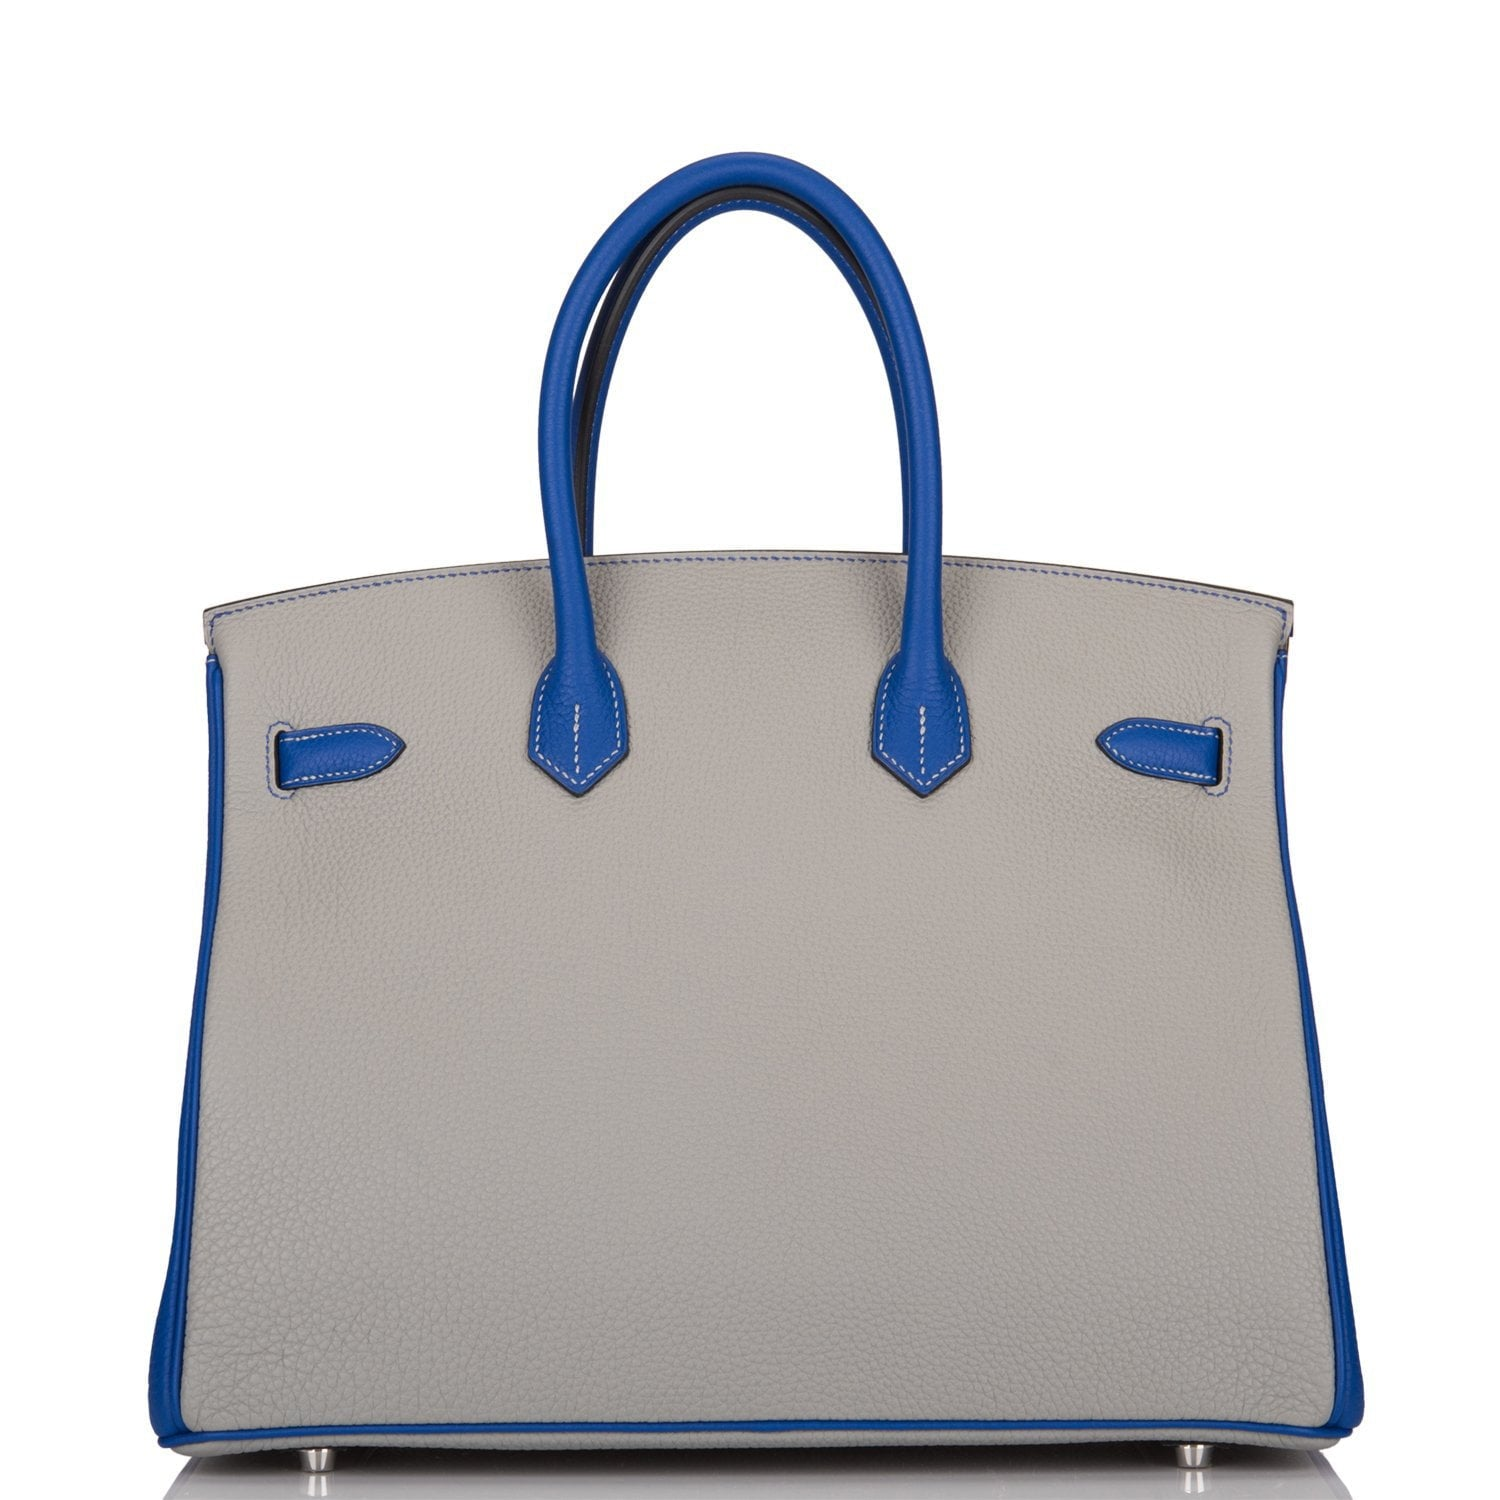 Hermes HSS SO Bi-Color Blue Electric and Gris Mouette Togo Birkin 35cm Brushed Palladium Hardware